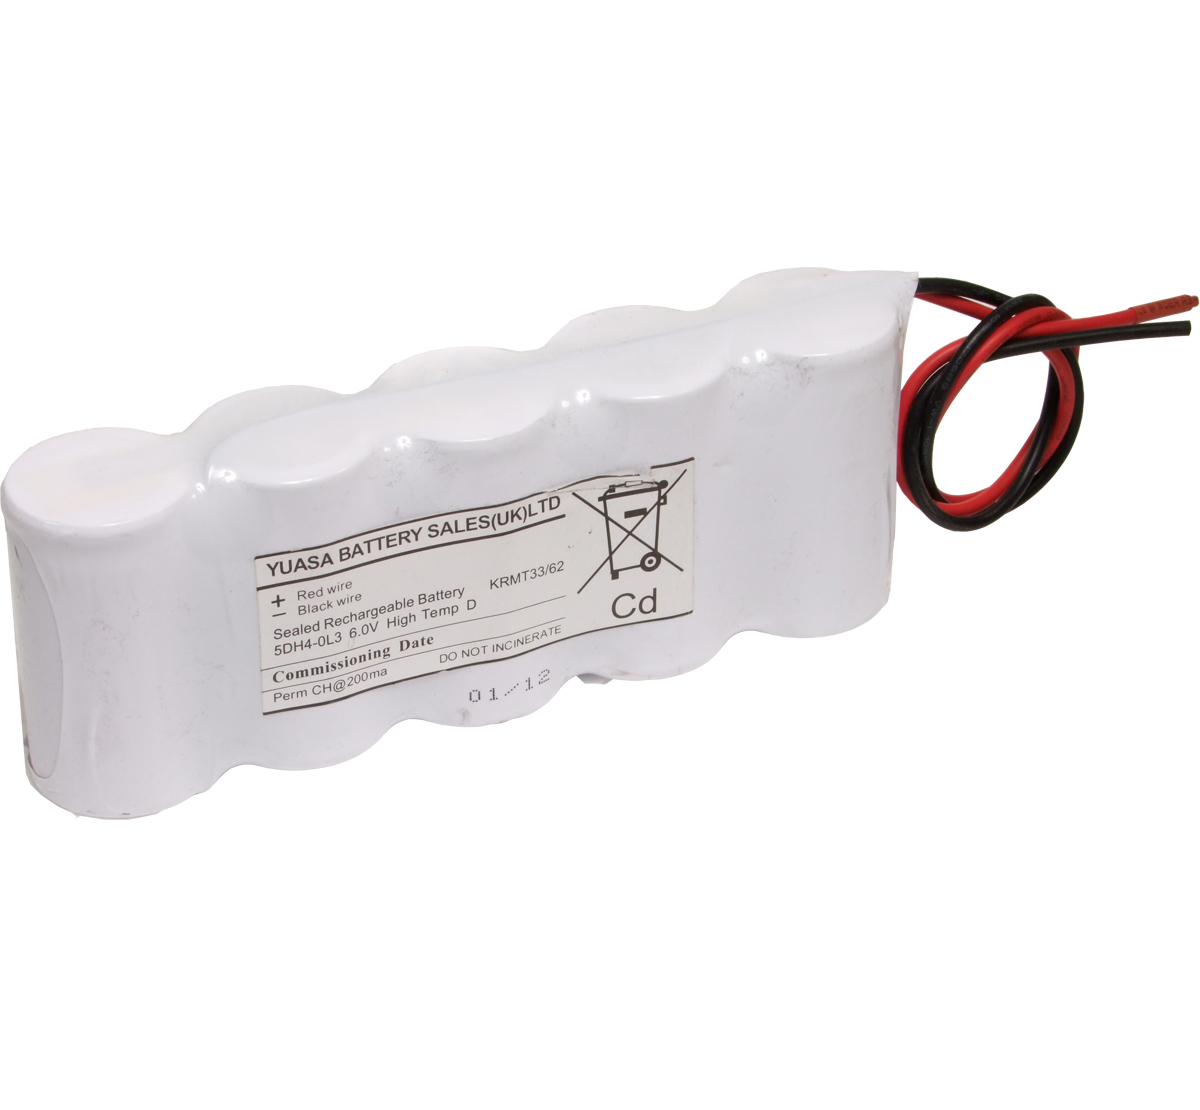 Yuasa 5DH4.0L3 Emergency Lighting Battery